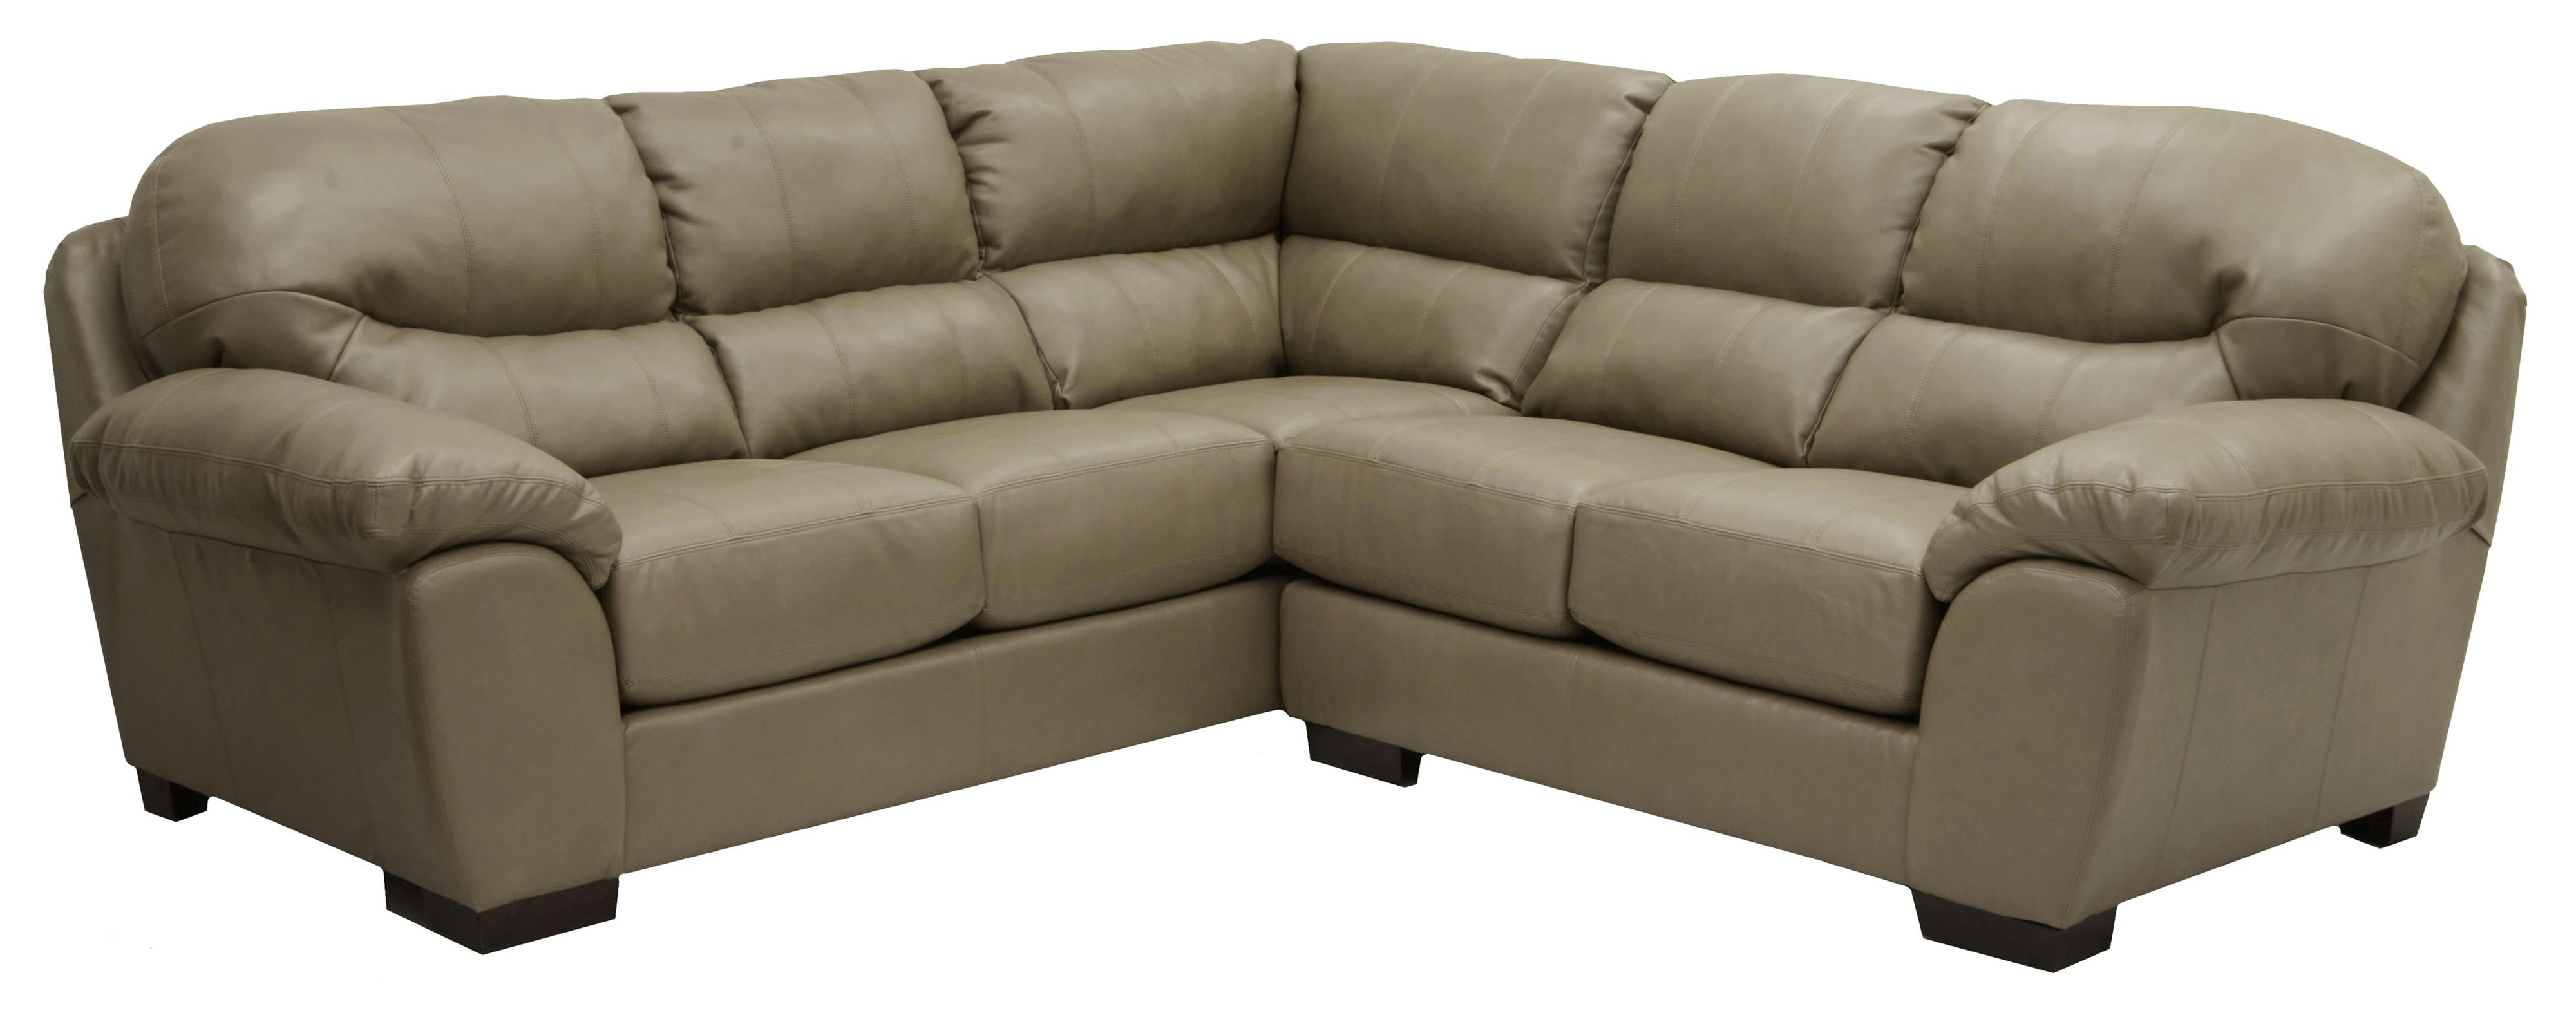 Incroyable Sectional Sofa In Corner Configuration